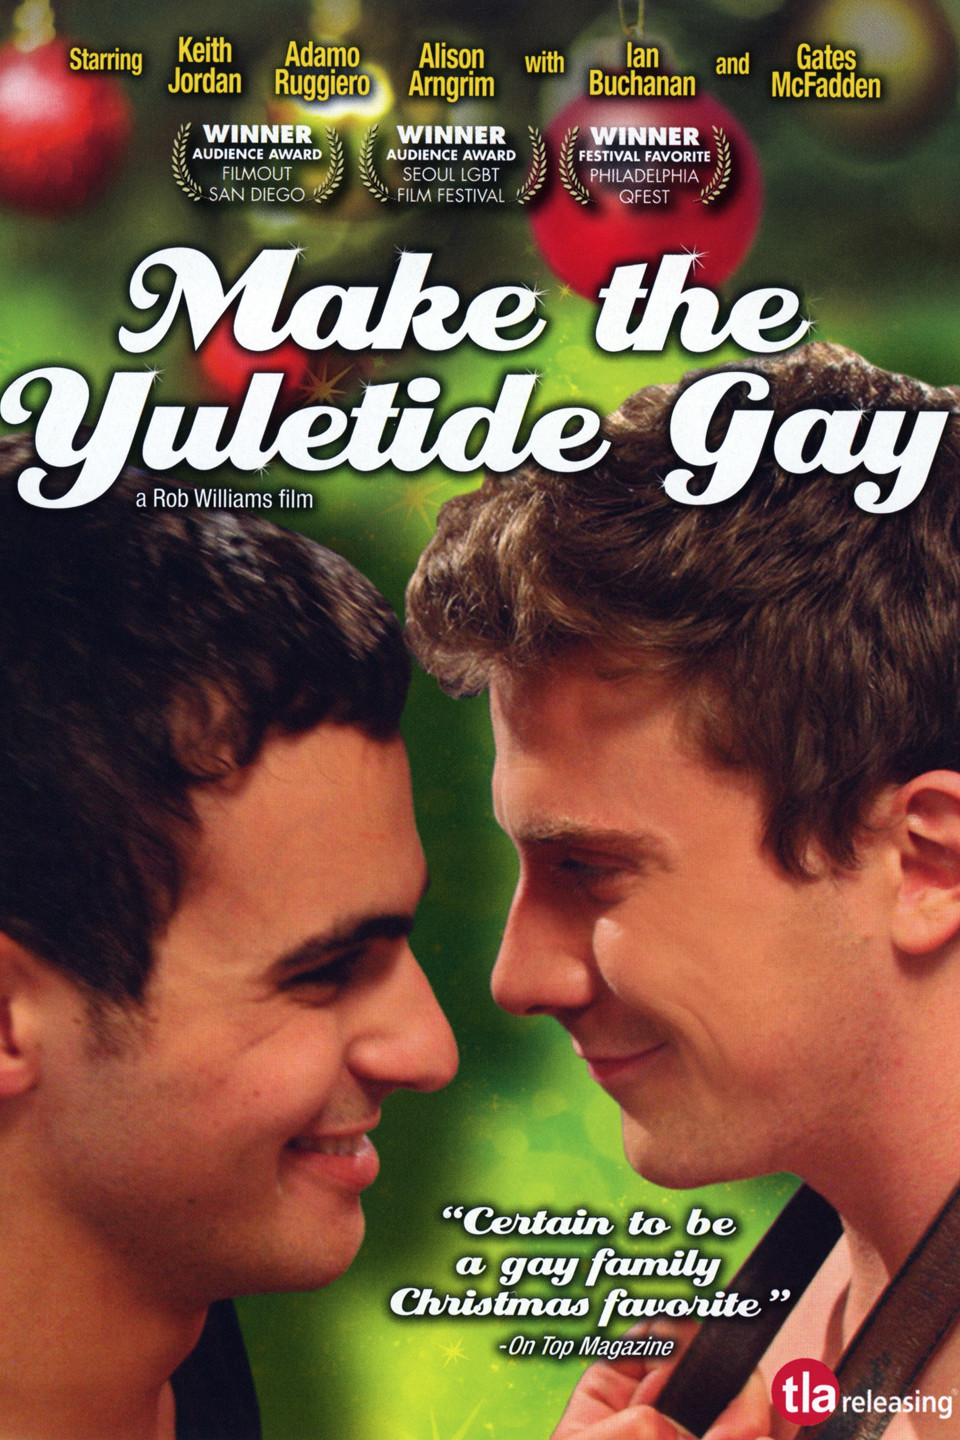 Rainbow Café to Screen Movie 'Make the Yuletide Gay' on Friday, December 16